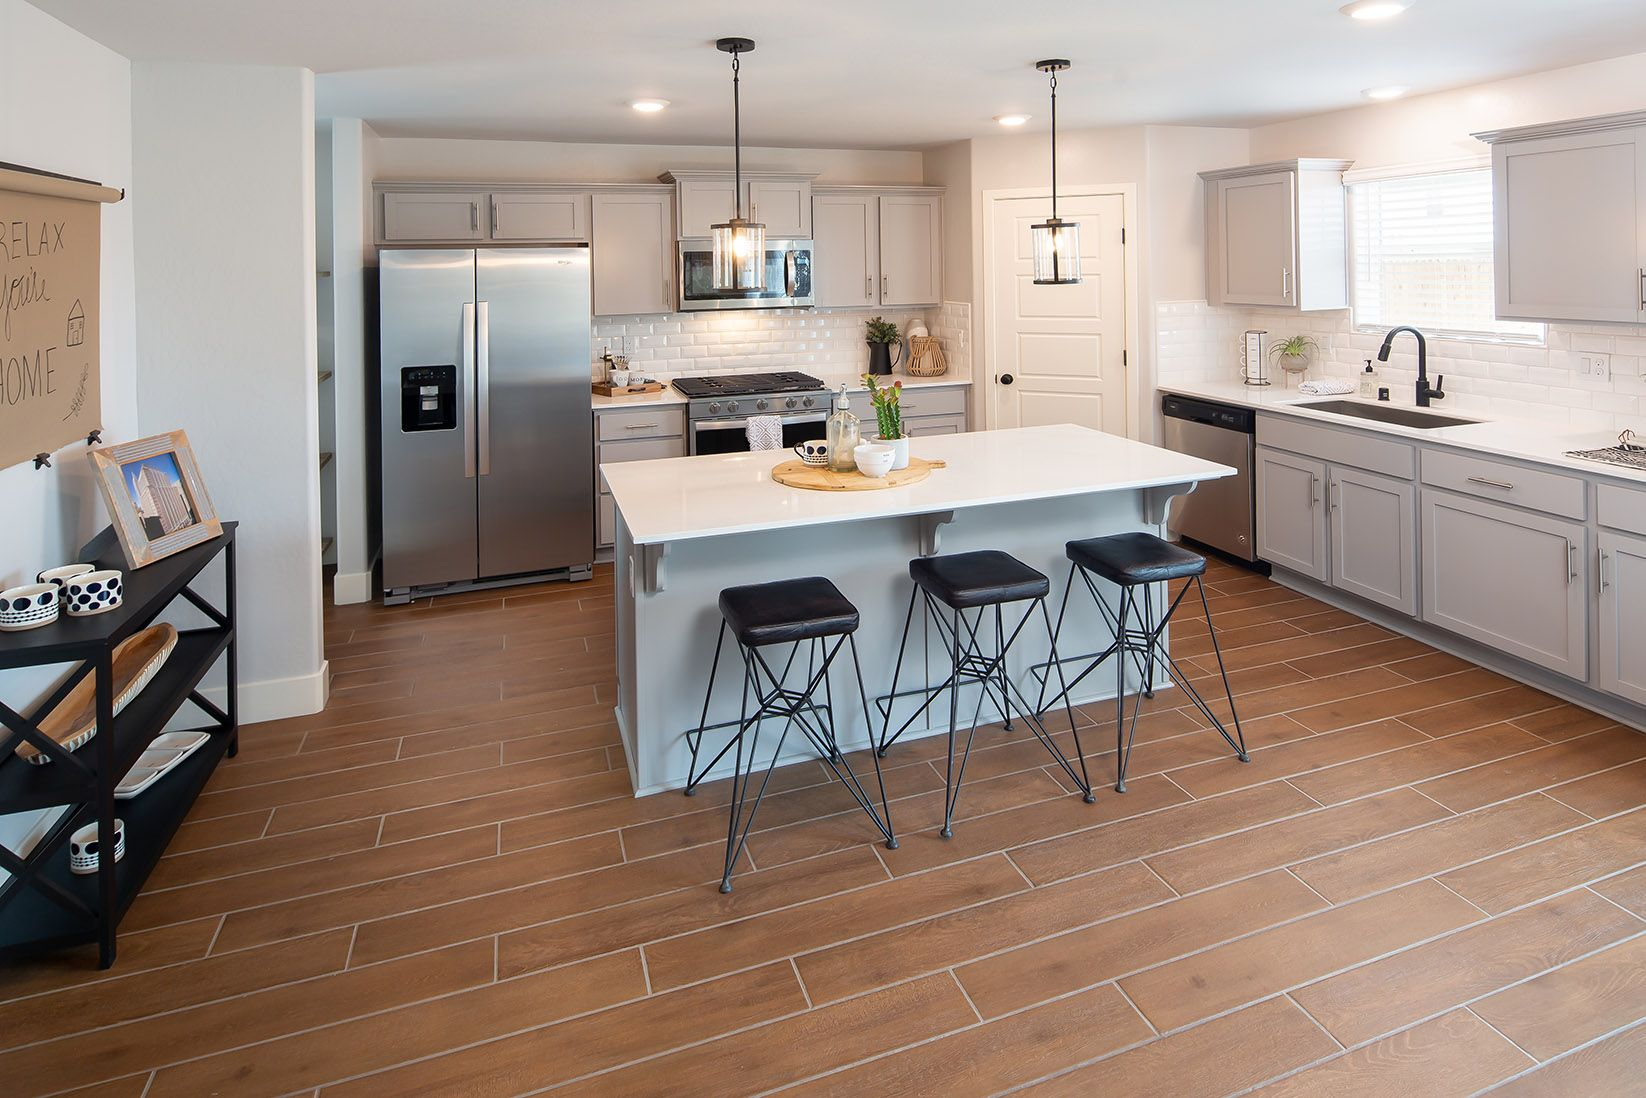 Kitchen featured in the Monroe By D.R. Horton in Merced, CA